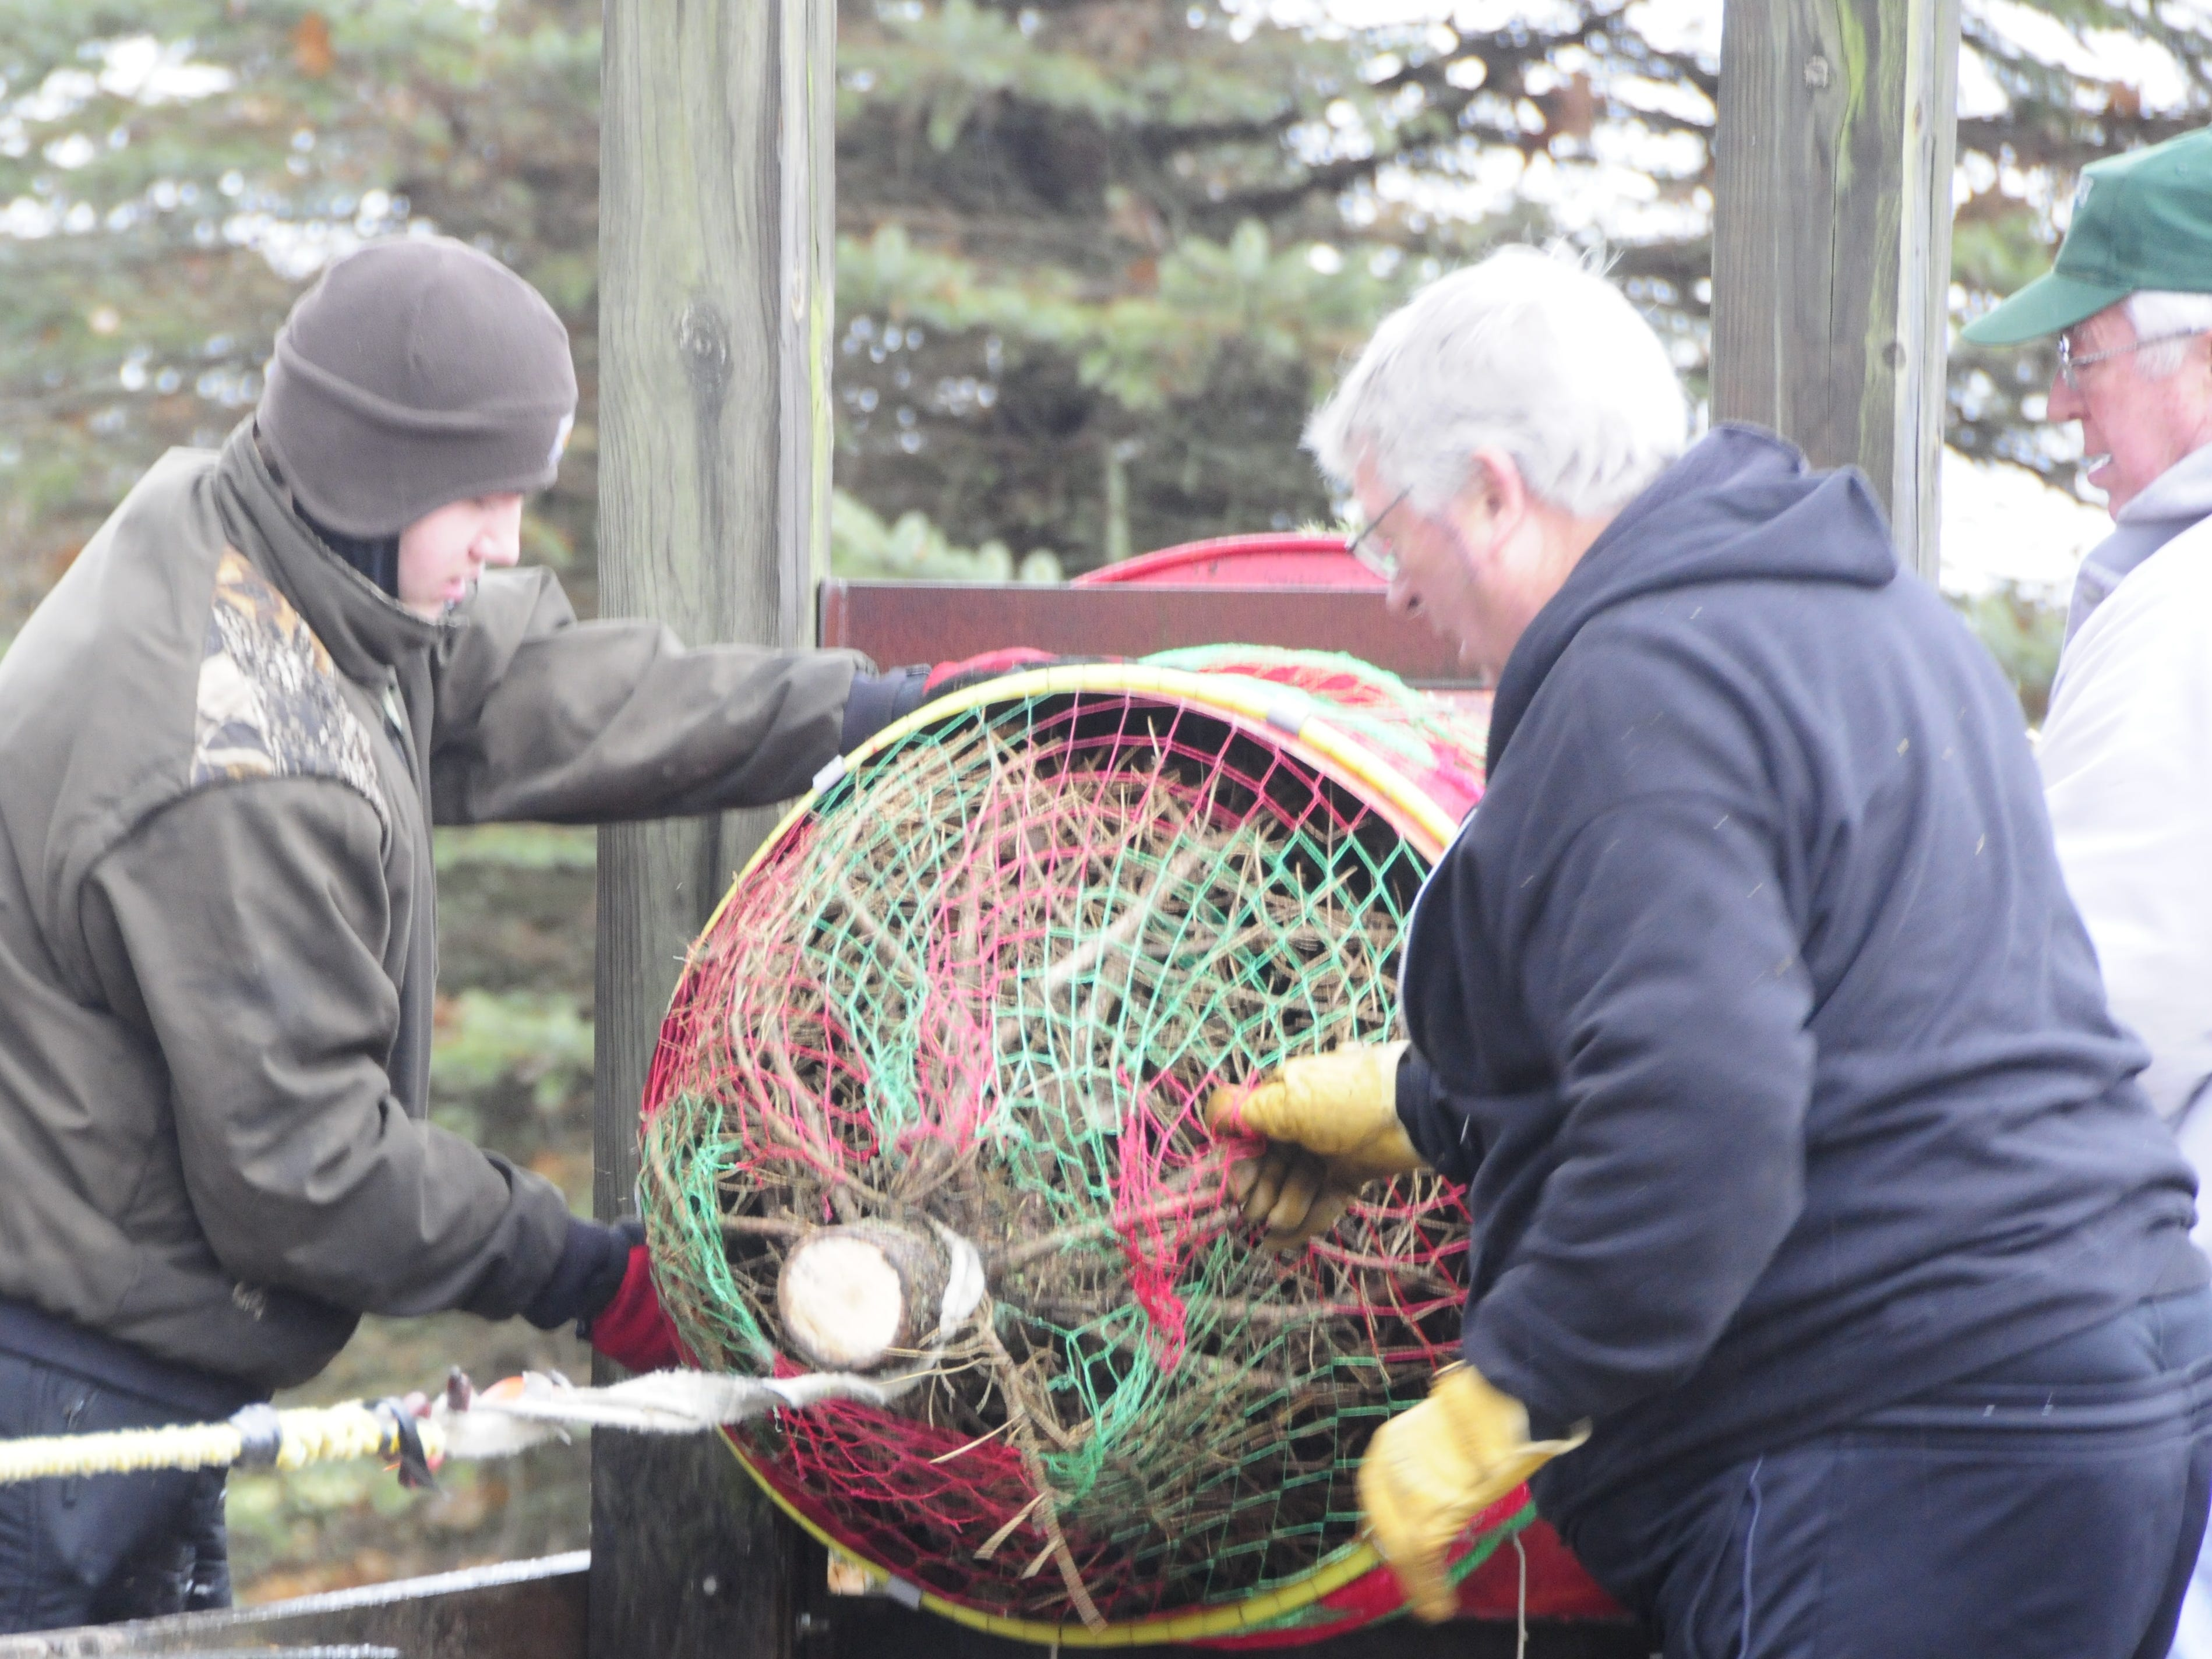 Ian, Clyde and Ken Dunsmore wrap a Christmas tree at Dunsmore Blue Spruce Tree Farm in Smiths Creek.